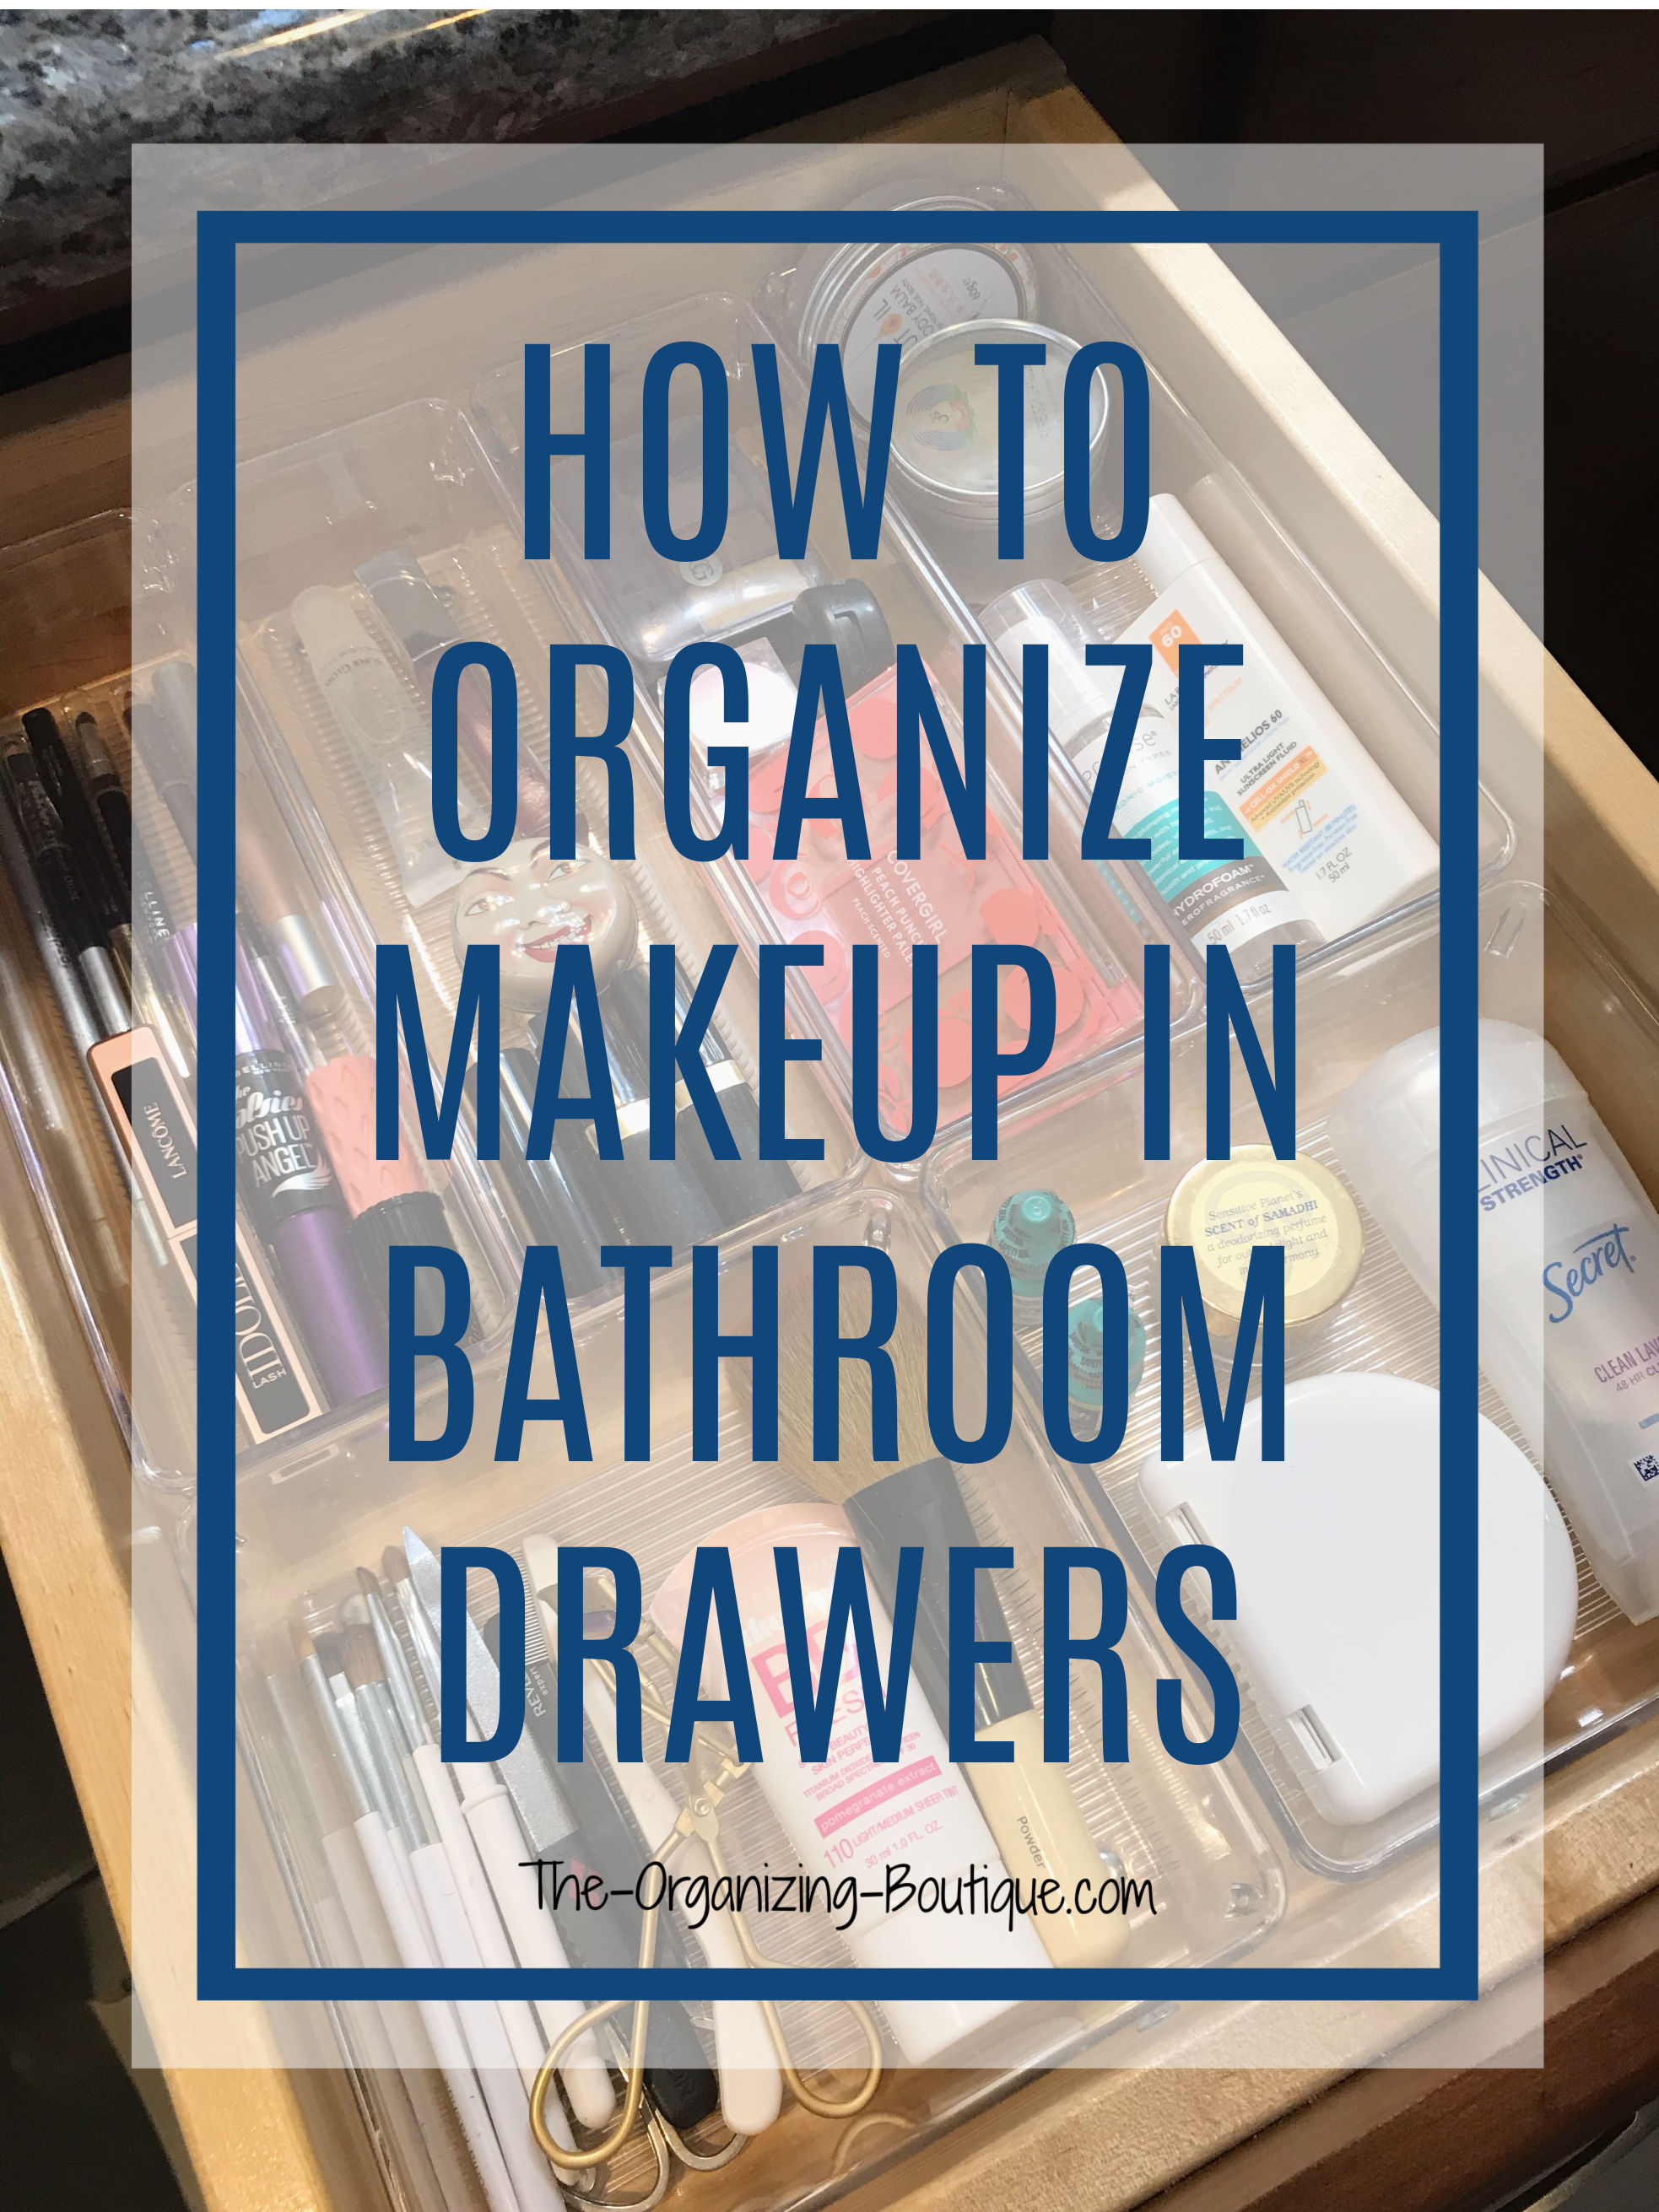 How To Organize Makeup In Bathroom Drawers